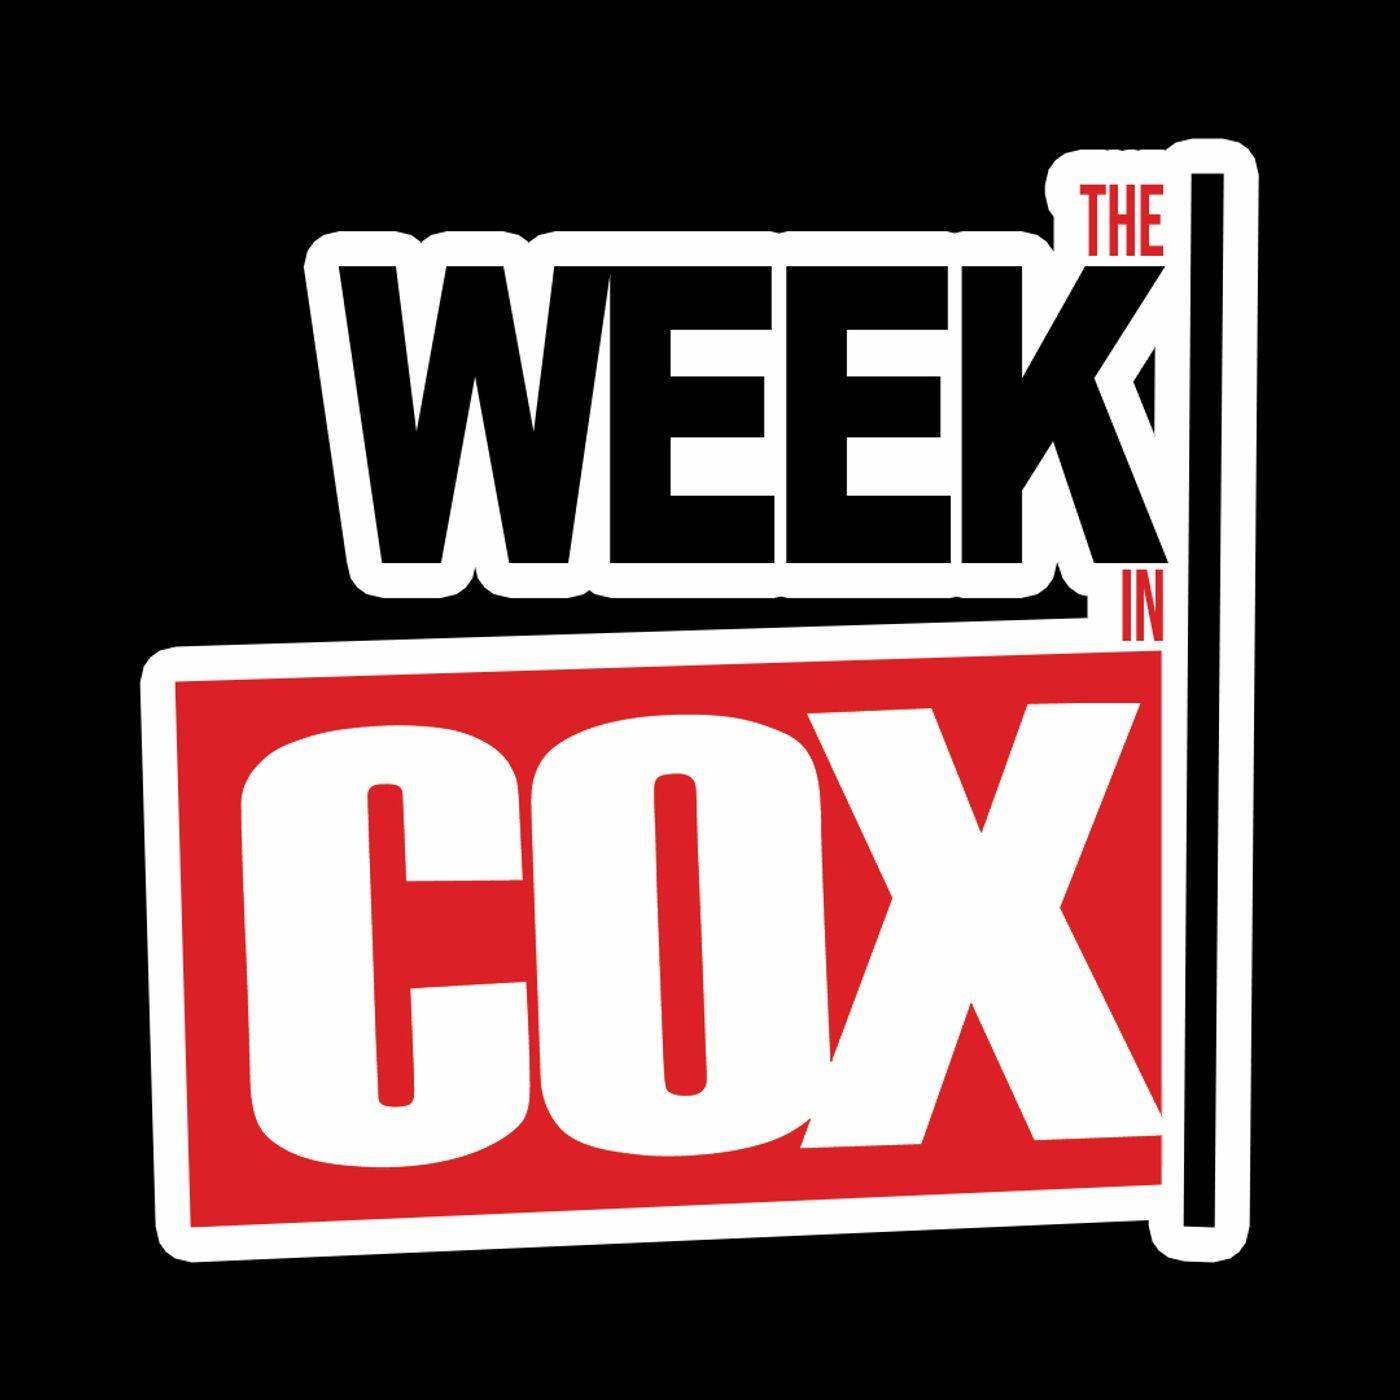 The Week in Cox